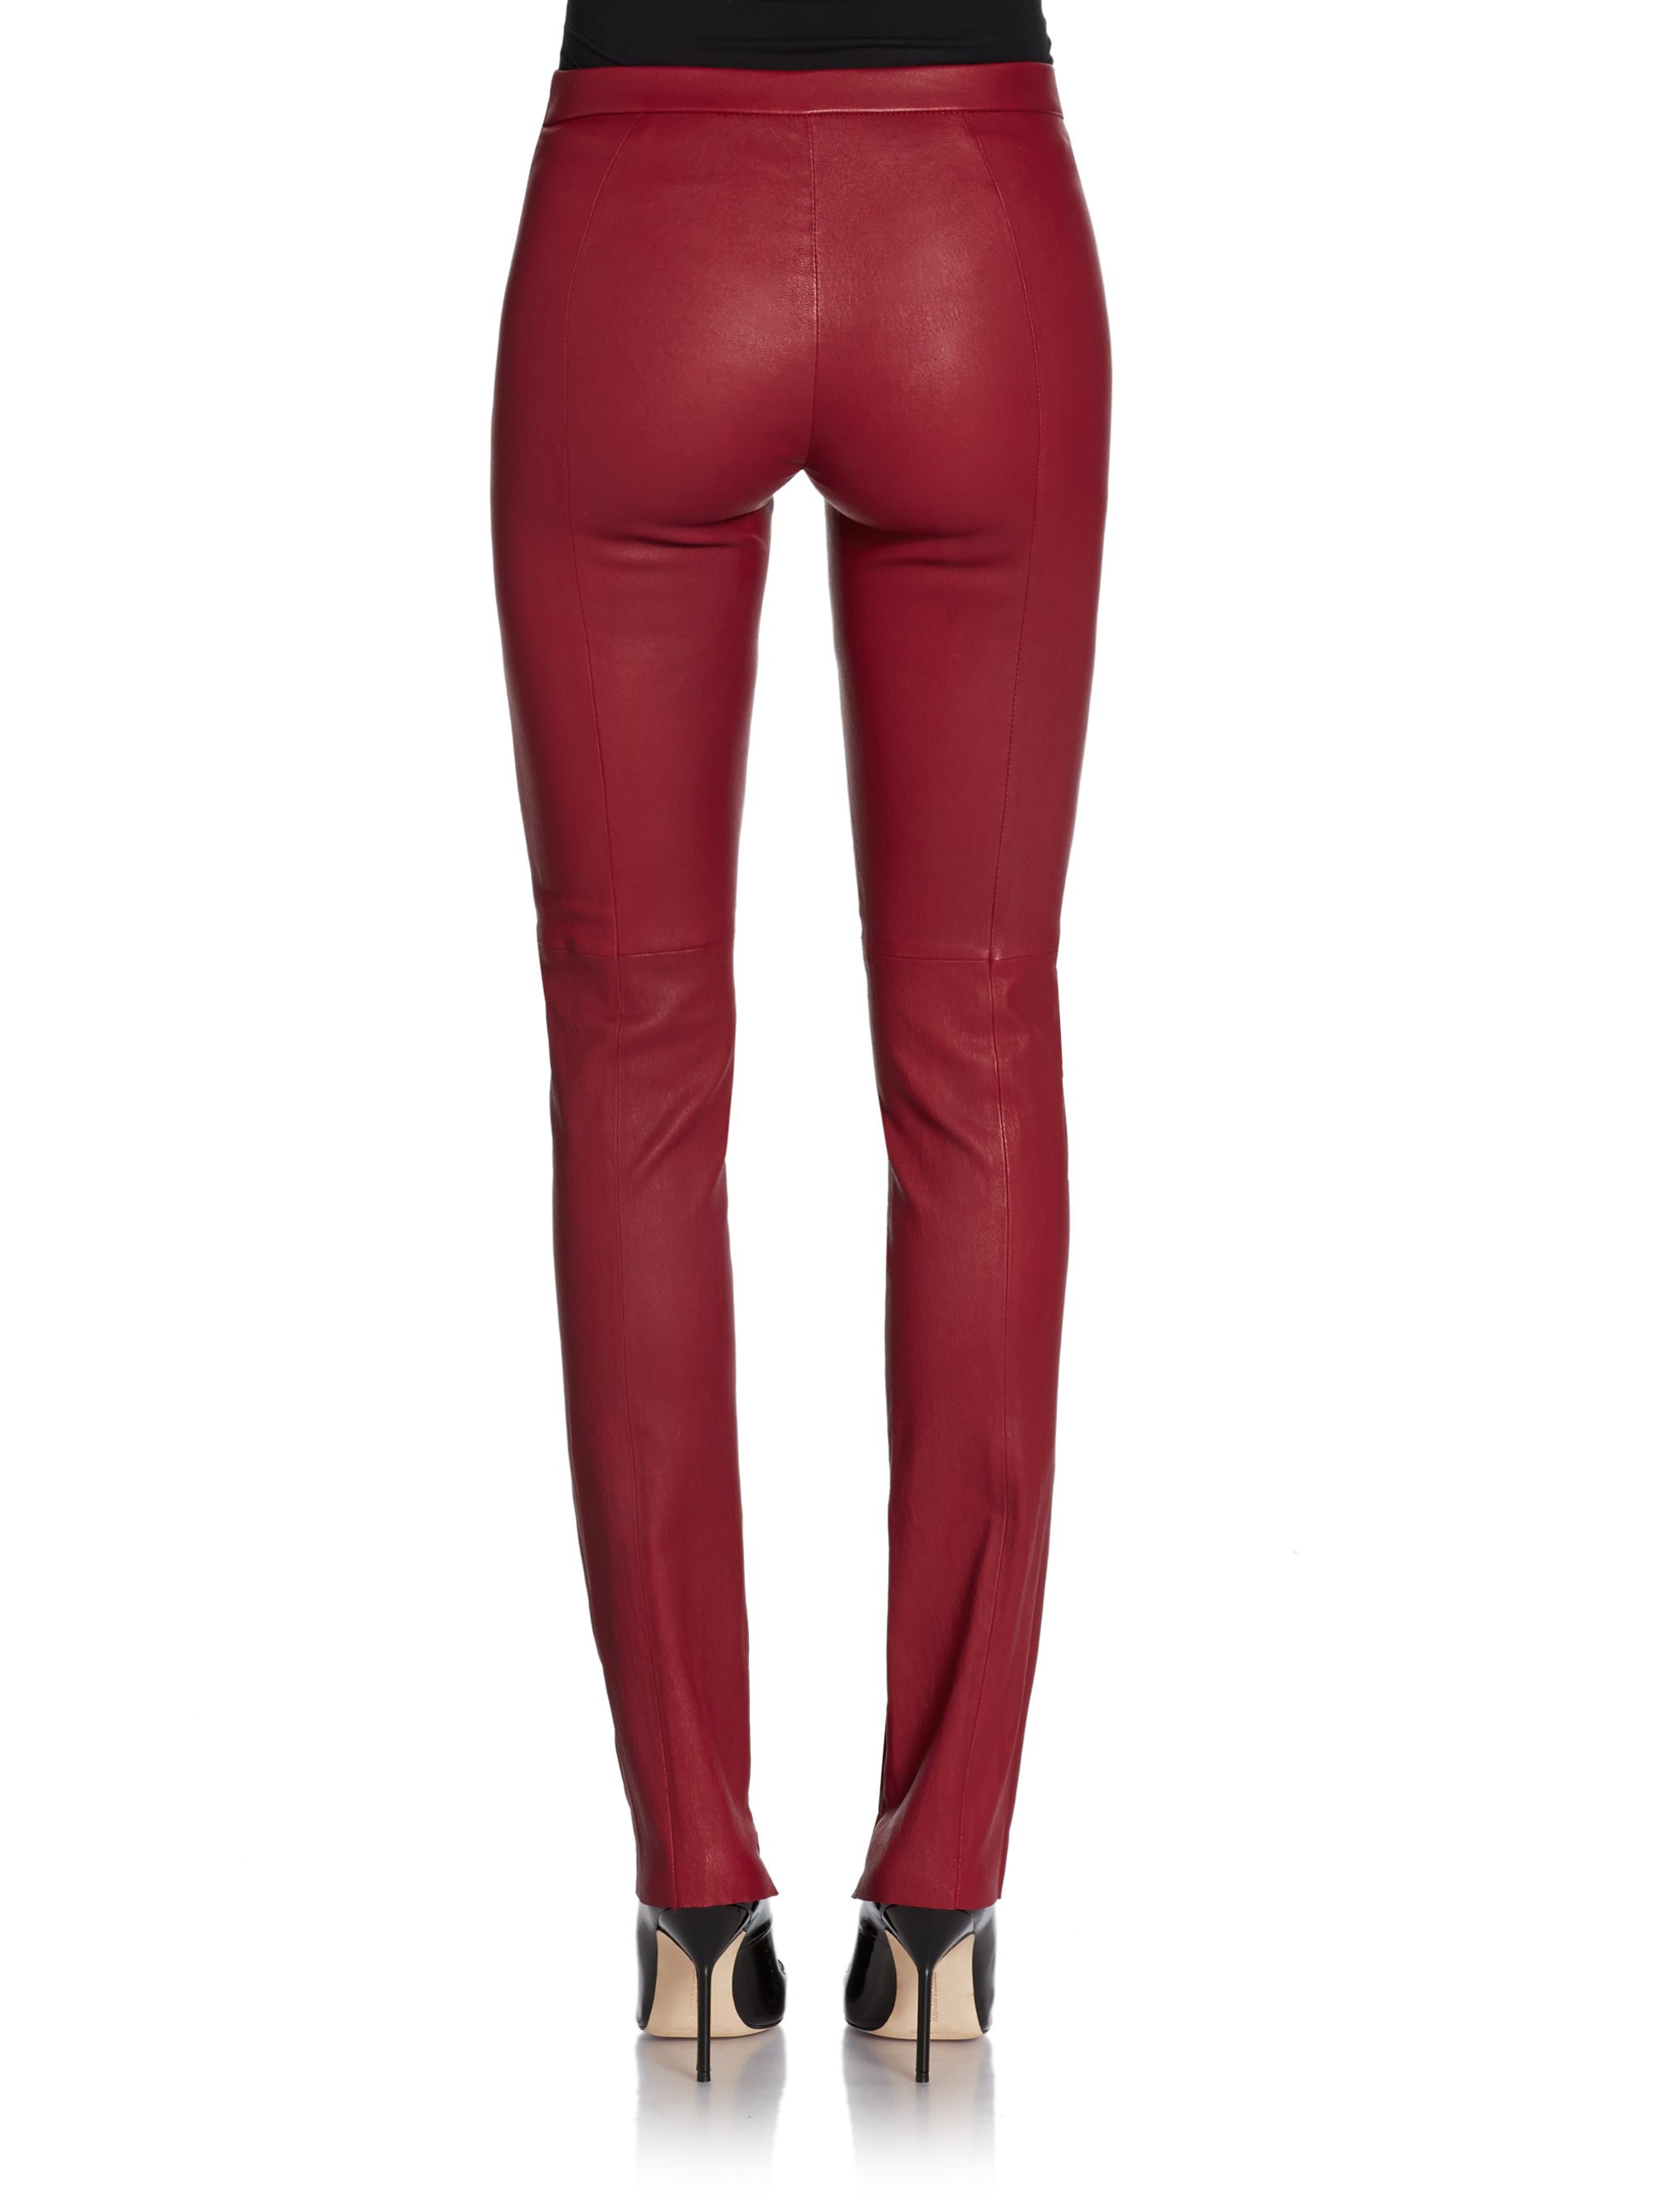 Shop for red skinny pants online at Target. Free shipping on purchases over $35 and save 5% every day with your Target REDcard.